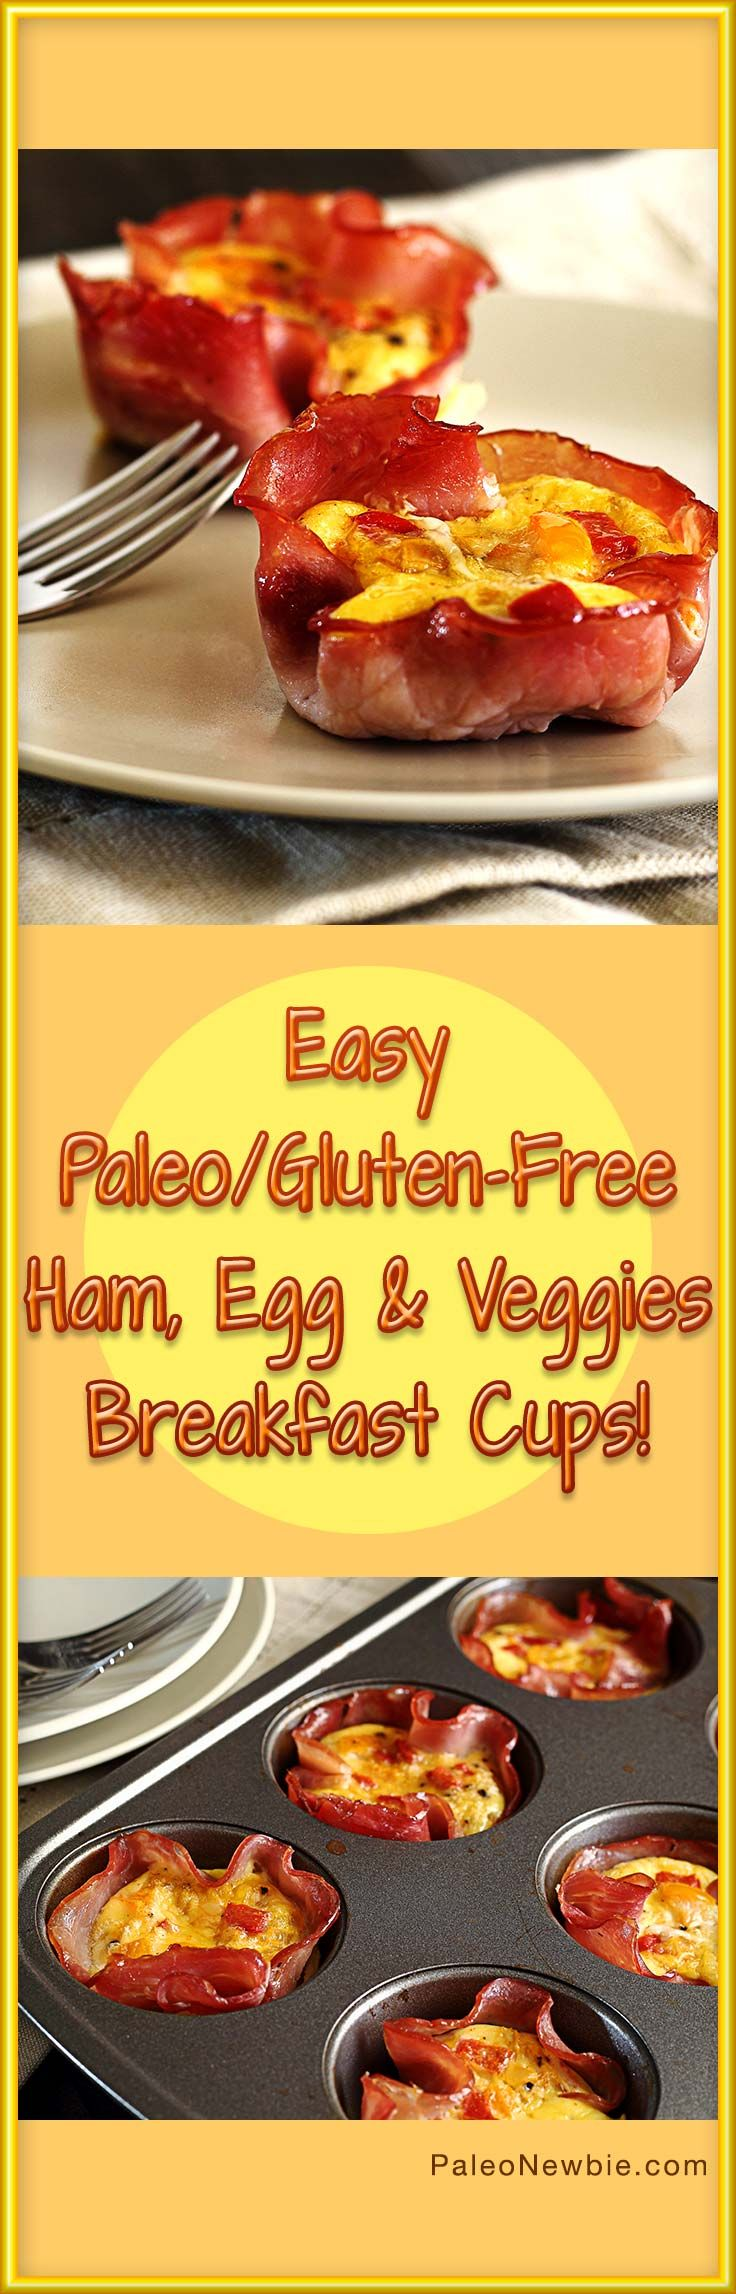 Quick, simple and delicious breakfast cups. Make ahead of time for a protein-packed grab-n-go breakfast anytime. Paleo & gluten-free recipe. #paleo #glutenfree